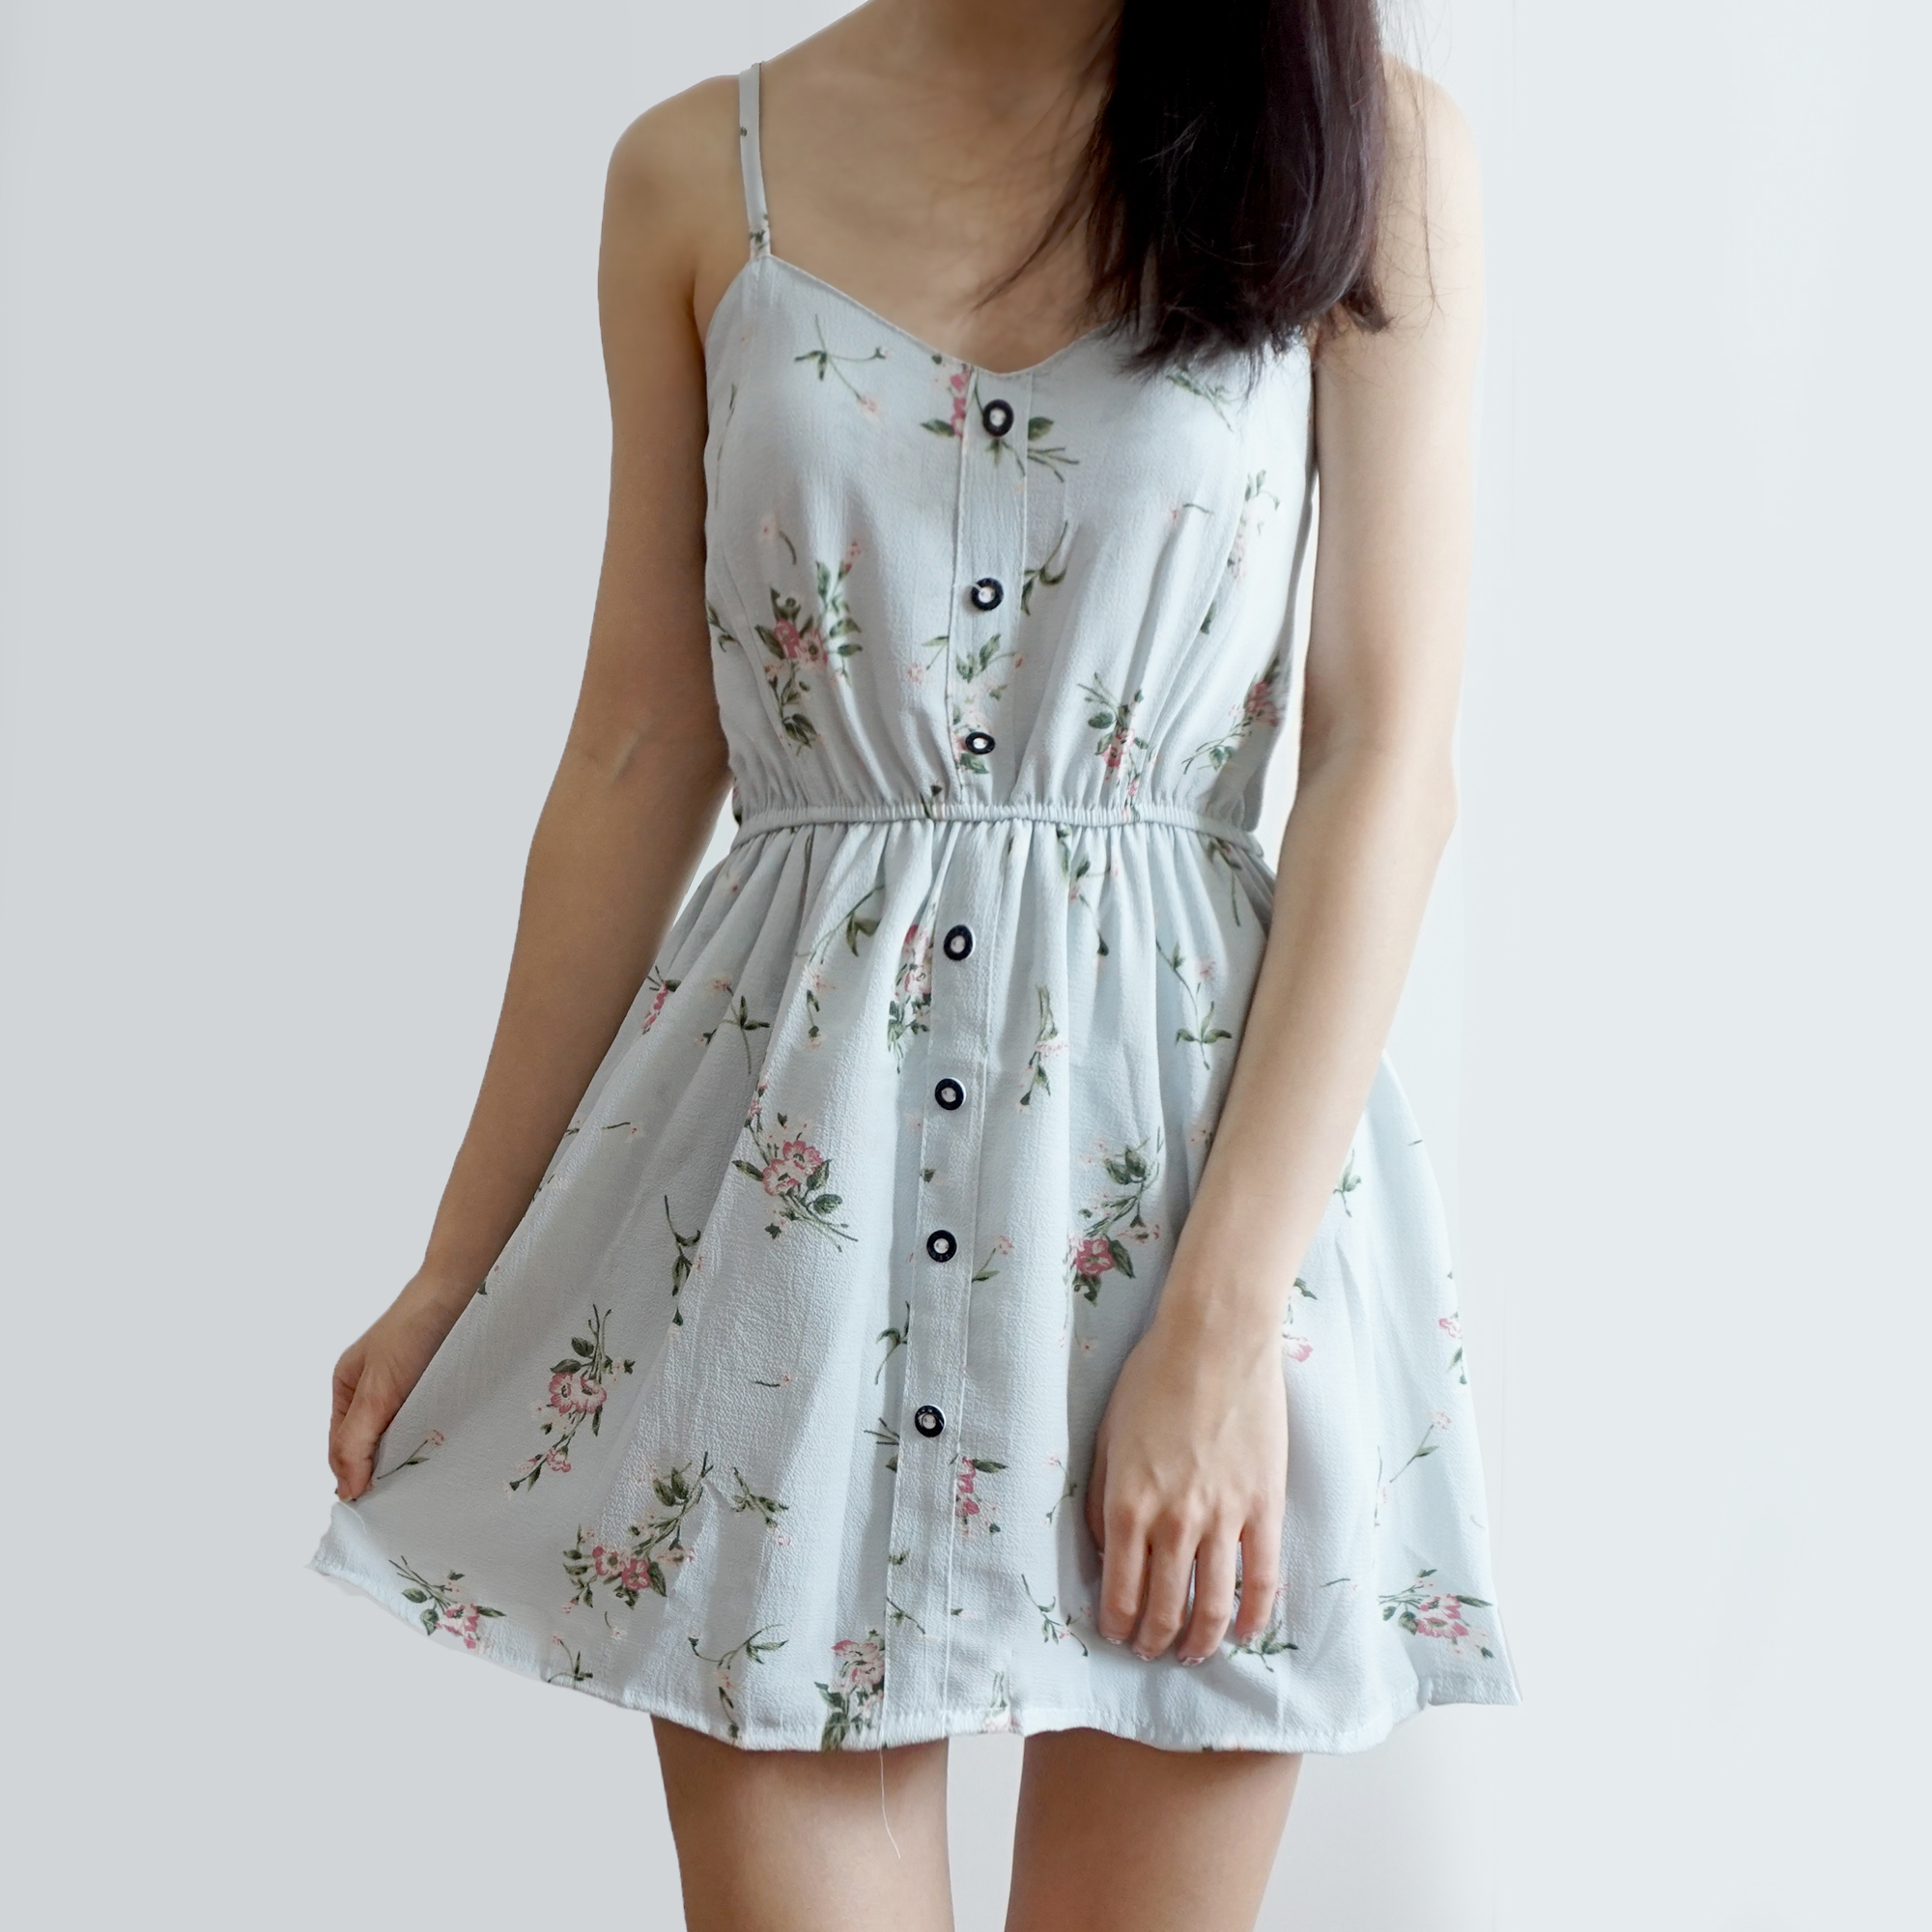 23b15be80 Ditsy Floral Button Up Romper (4 Colors) · Megoosta Fashion · Free ...